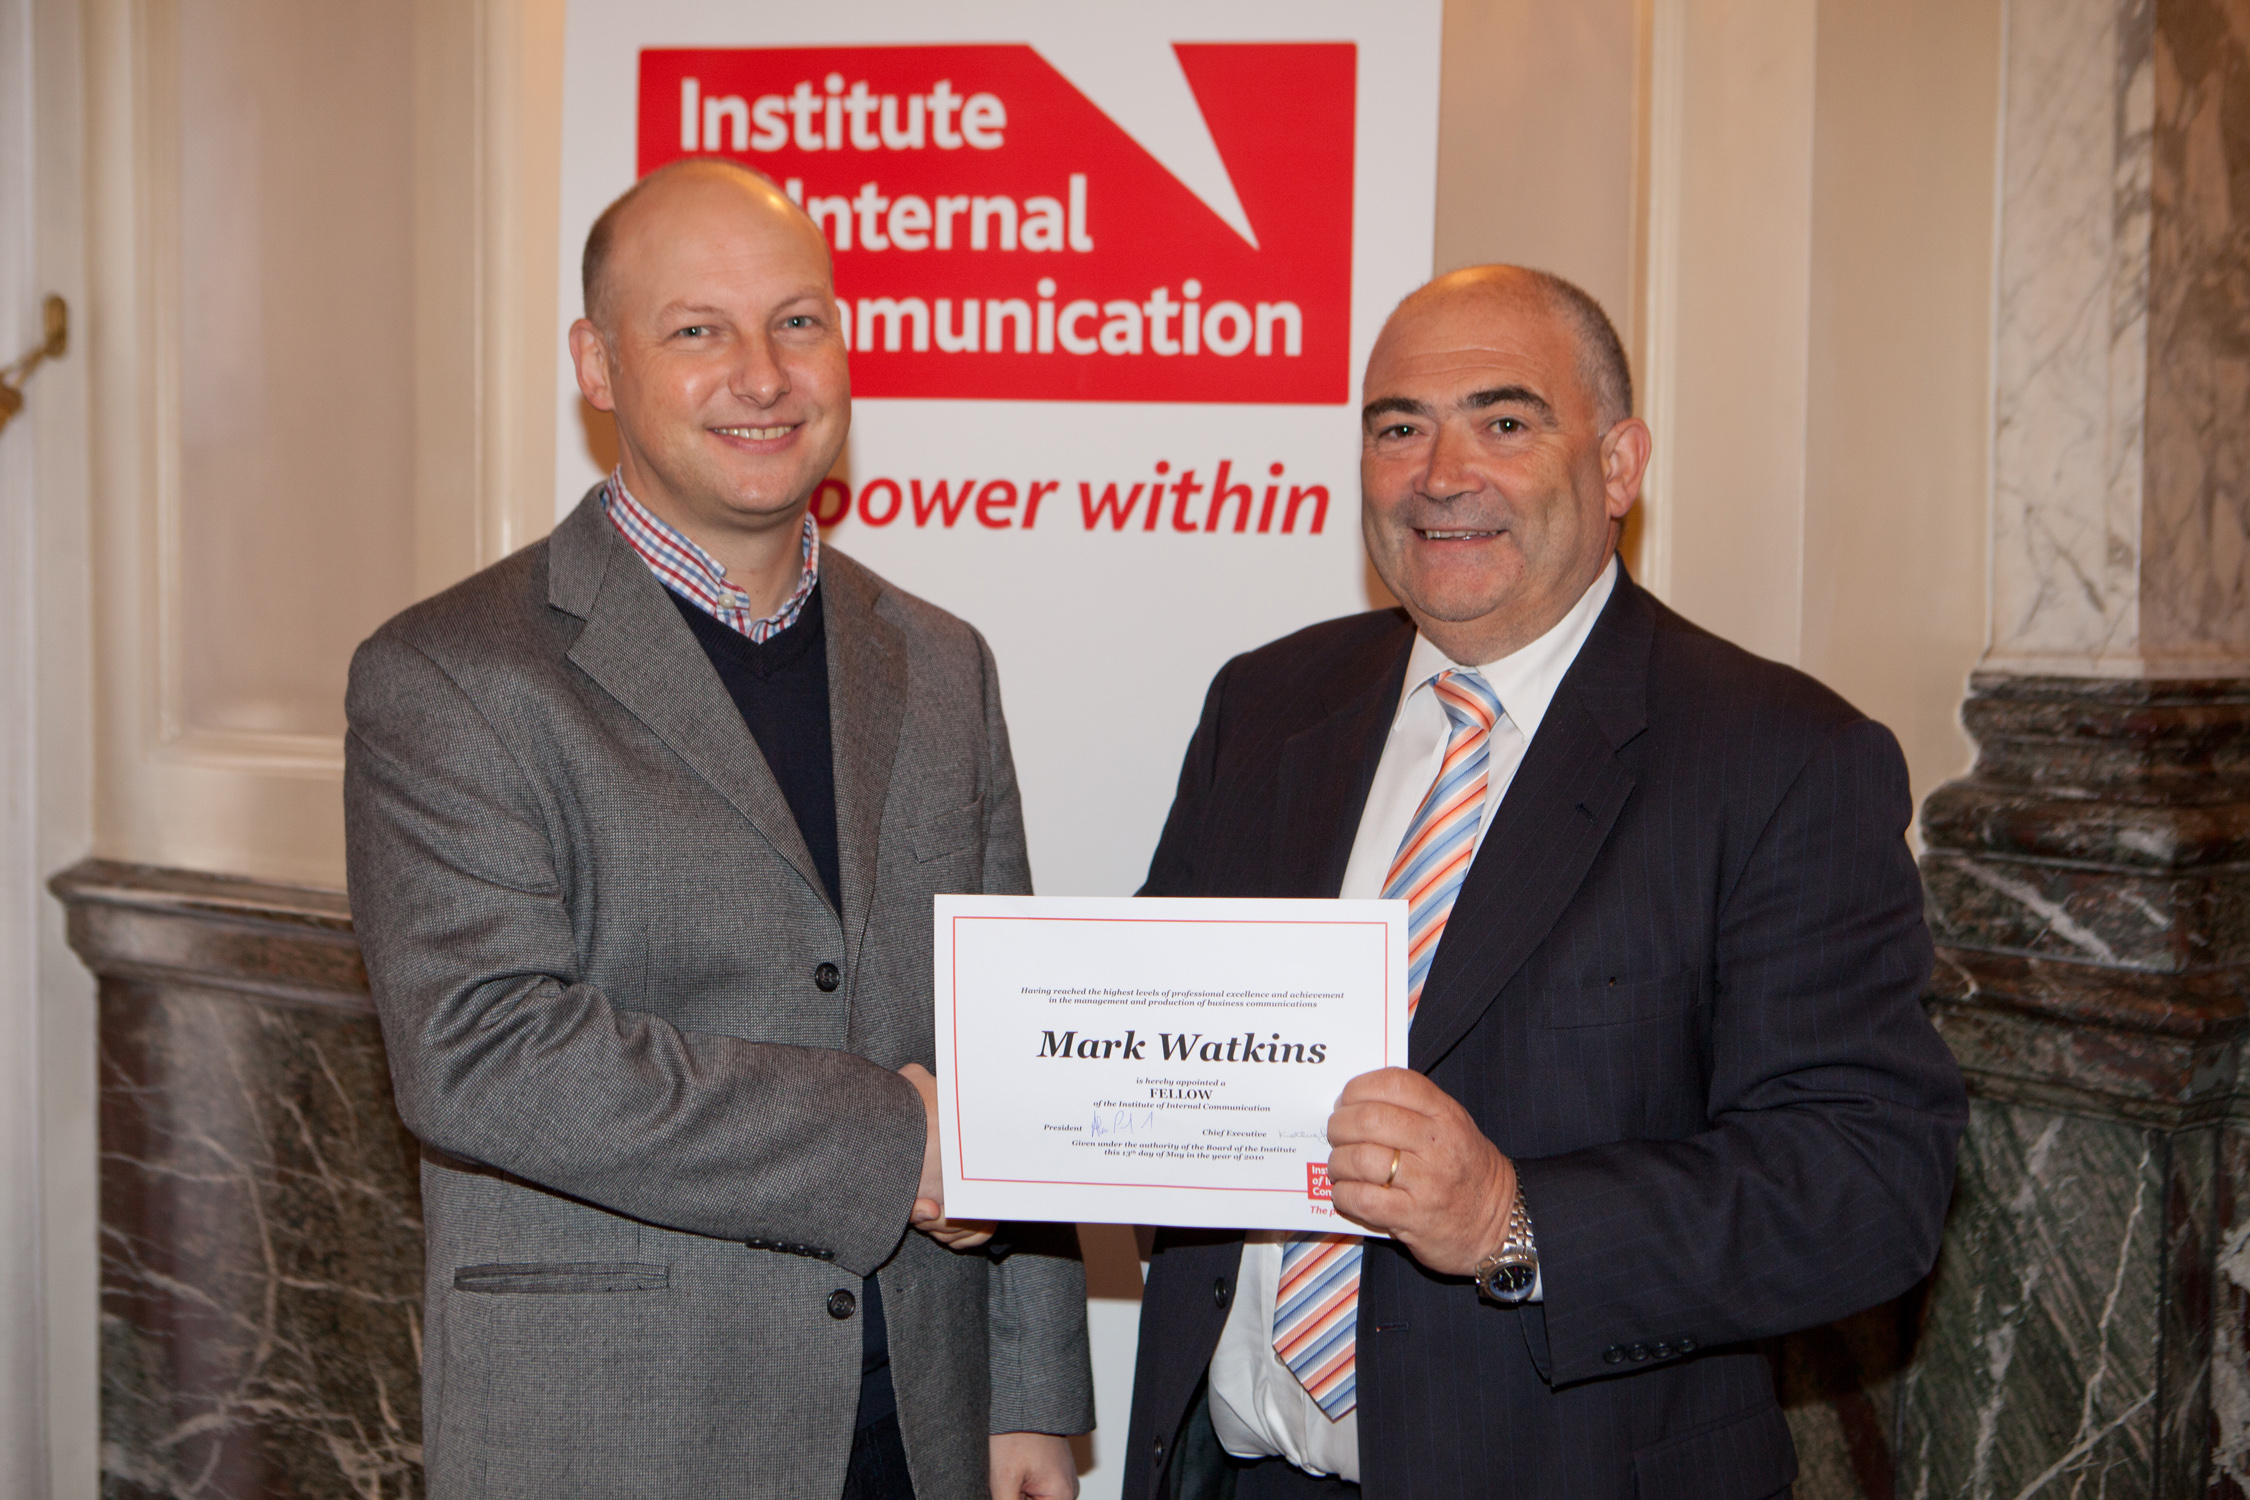 Mark Watkins (left) is elected a Fellow of the Institute of Internal Communication